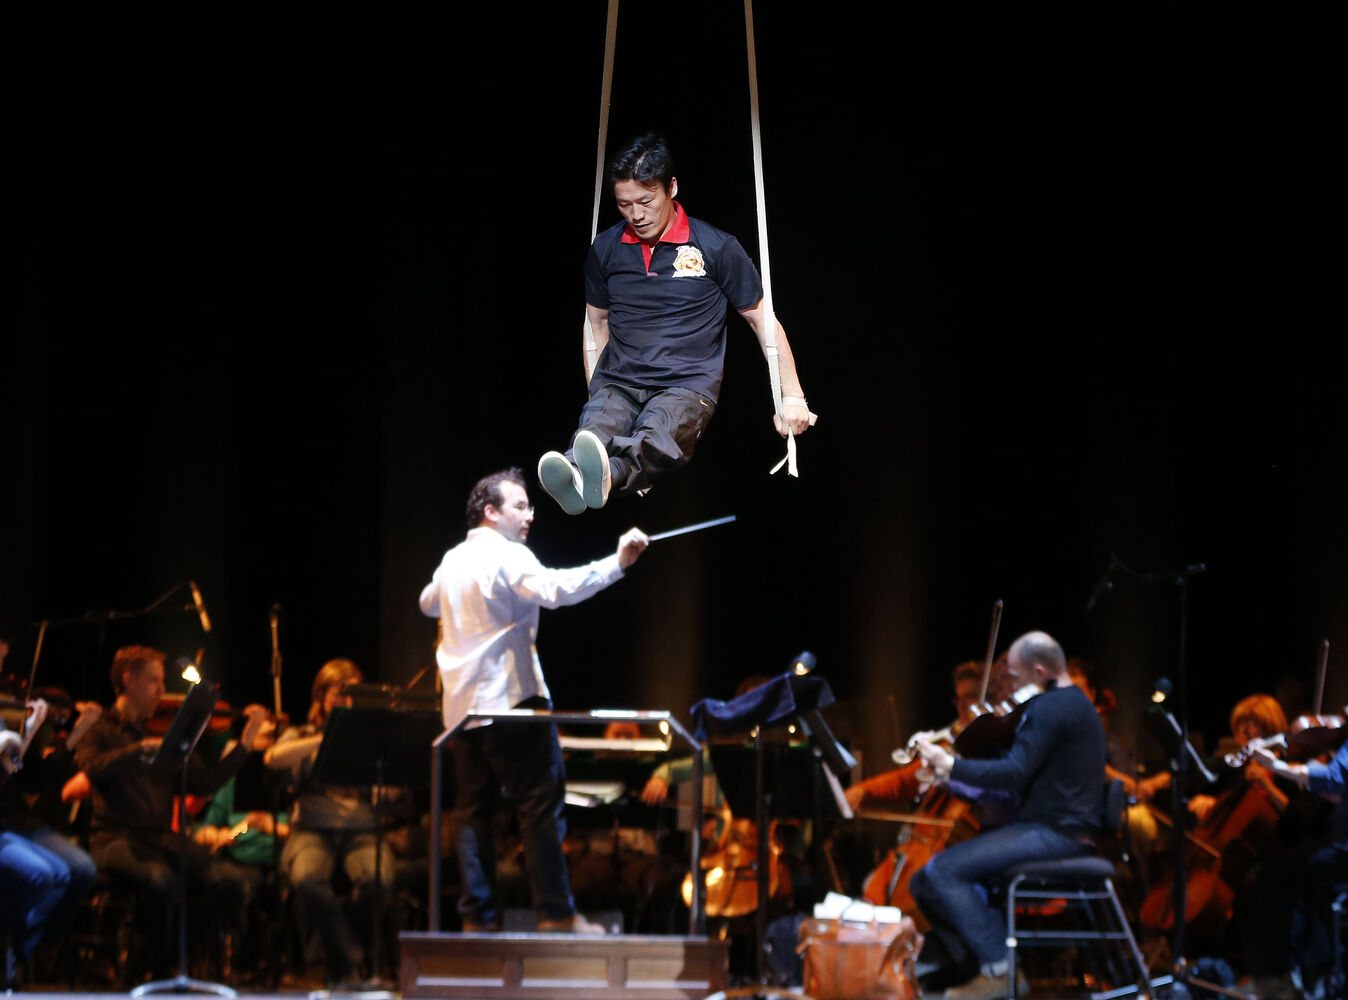 Winnipeg Symphony Orchestra's resident conductor directs the orchestra as the troupe performs a preview of their evening show. (KEN GIGLIOTTI / WINNIPEG FREE PRESS)